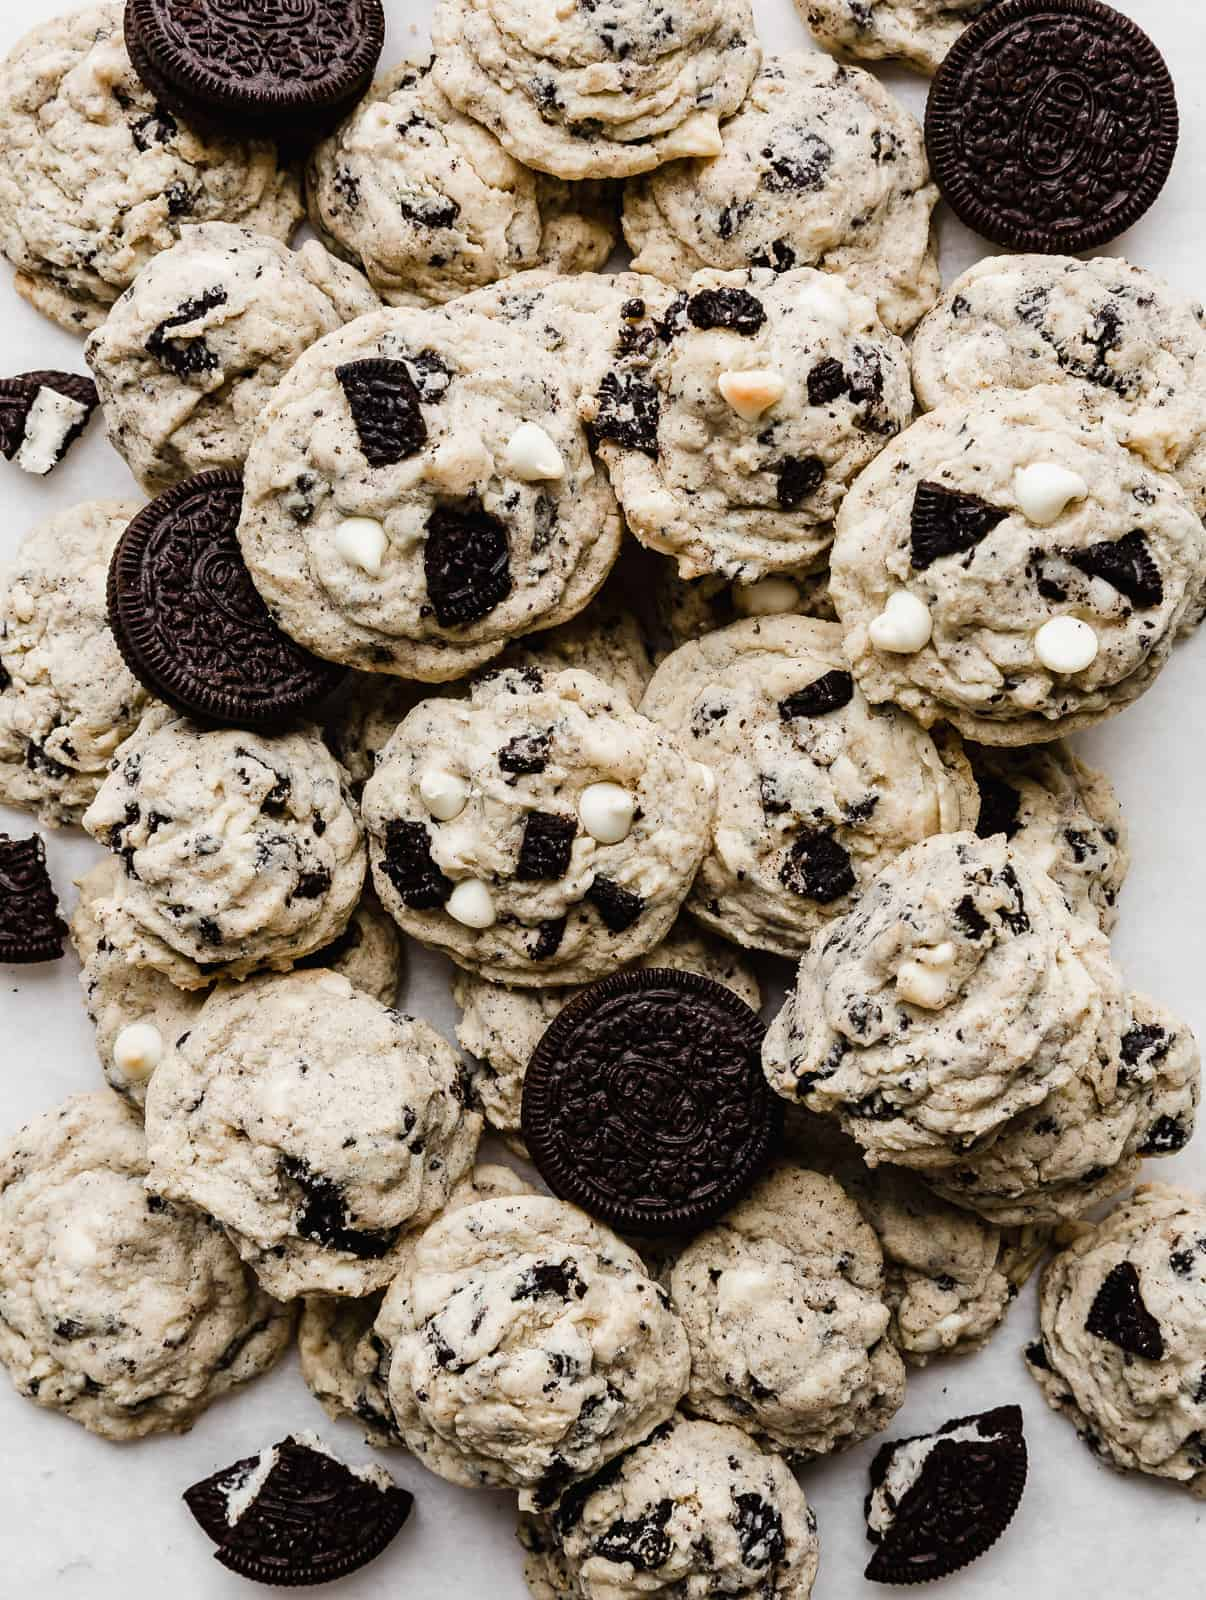 A pile of Cookies and Cream Cookies with Oreo's amongst the pile.